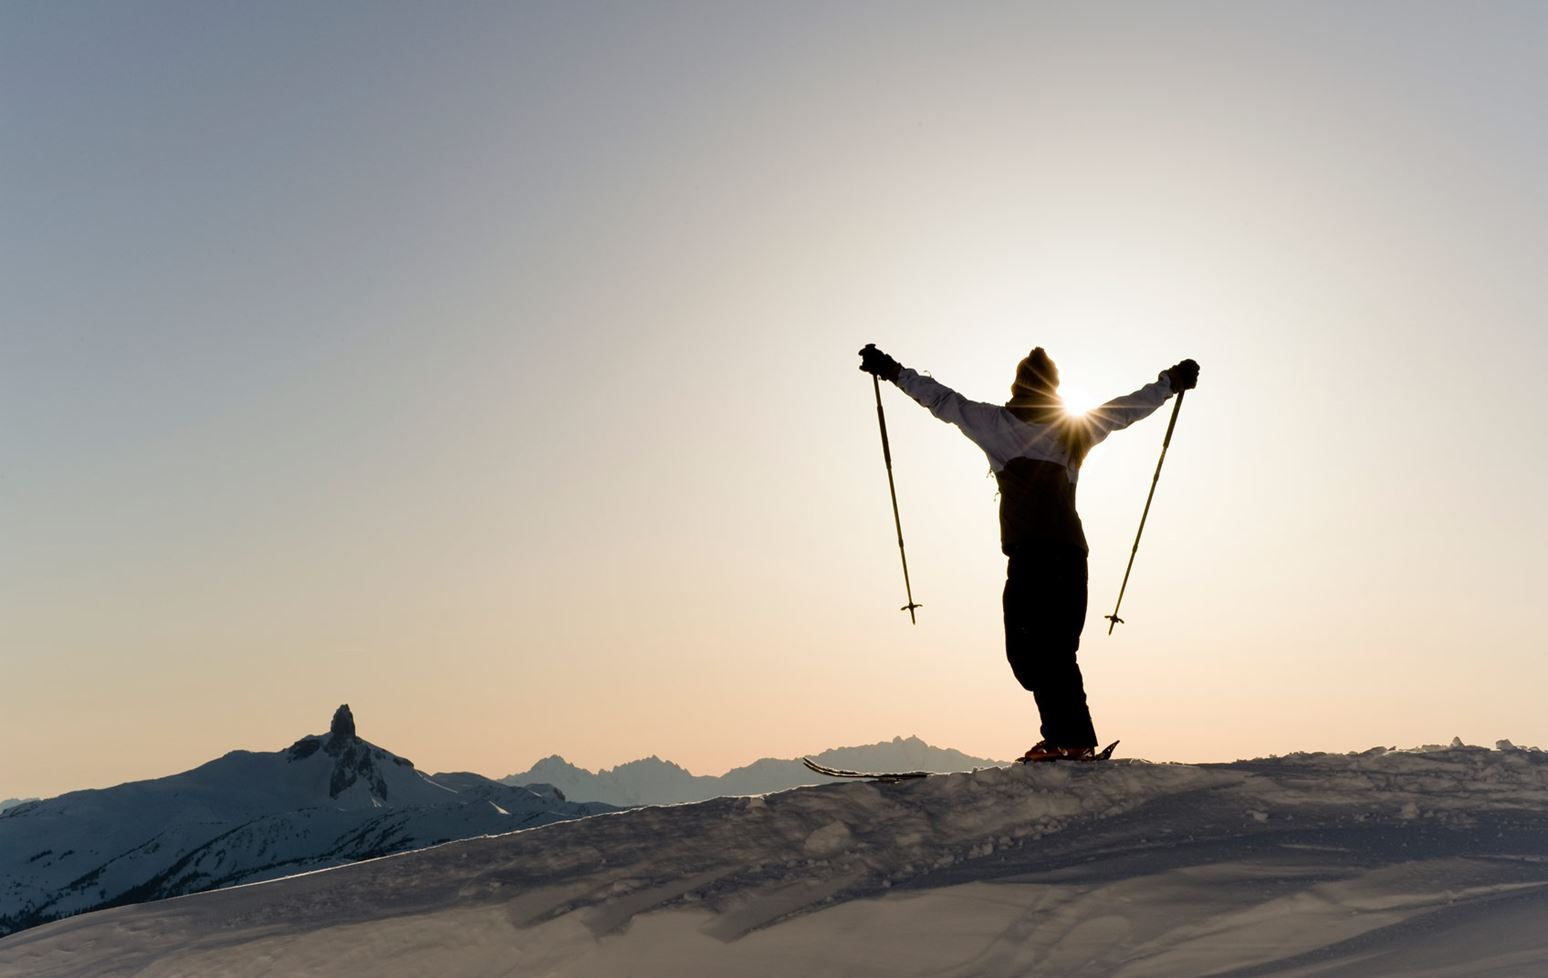 From skiing to saving lives, analytics is changing business and decision-making